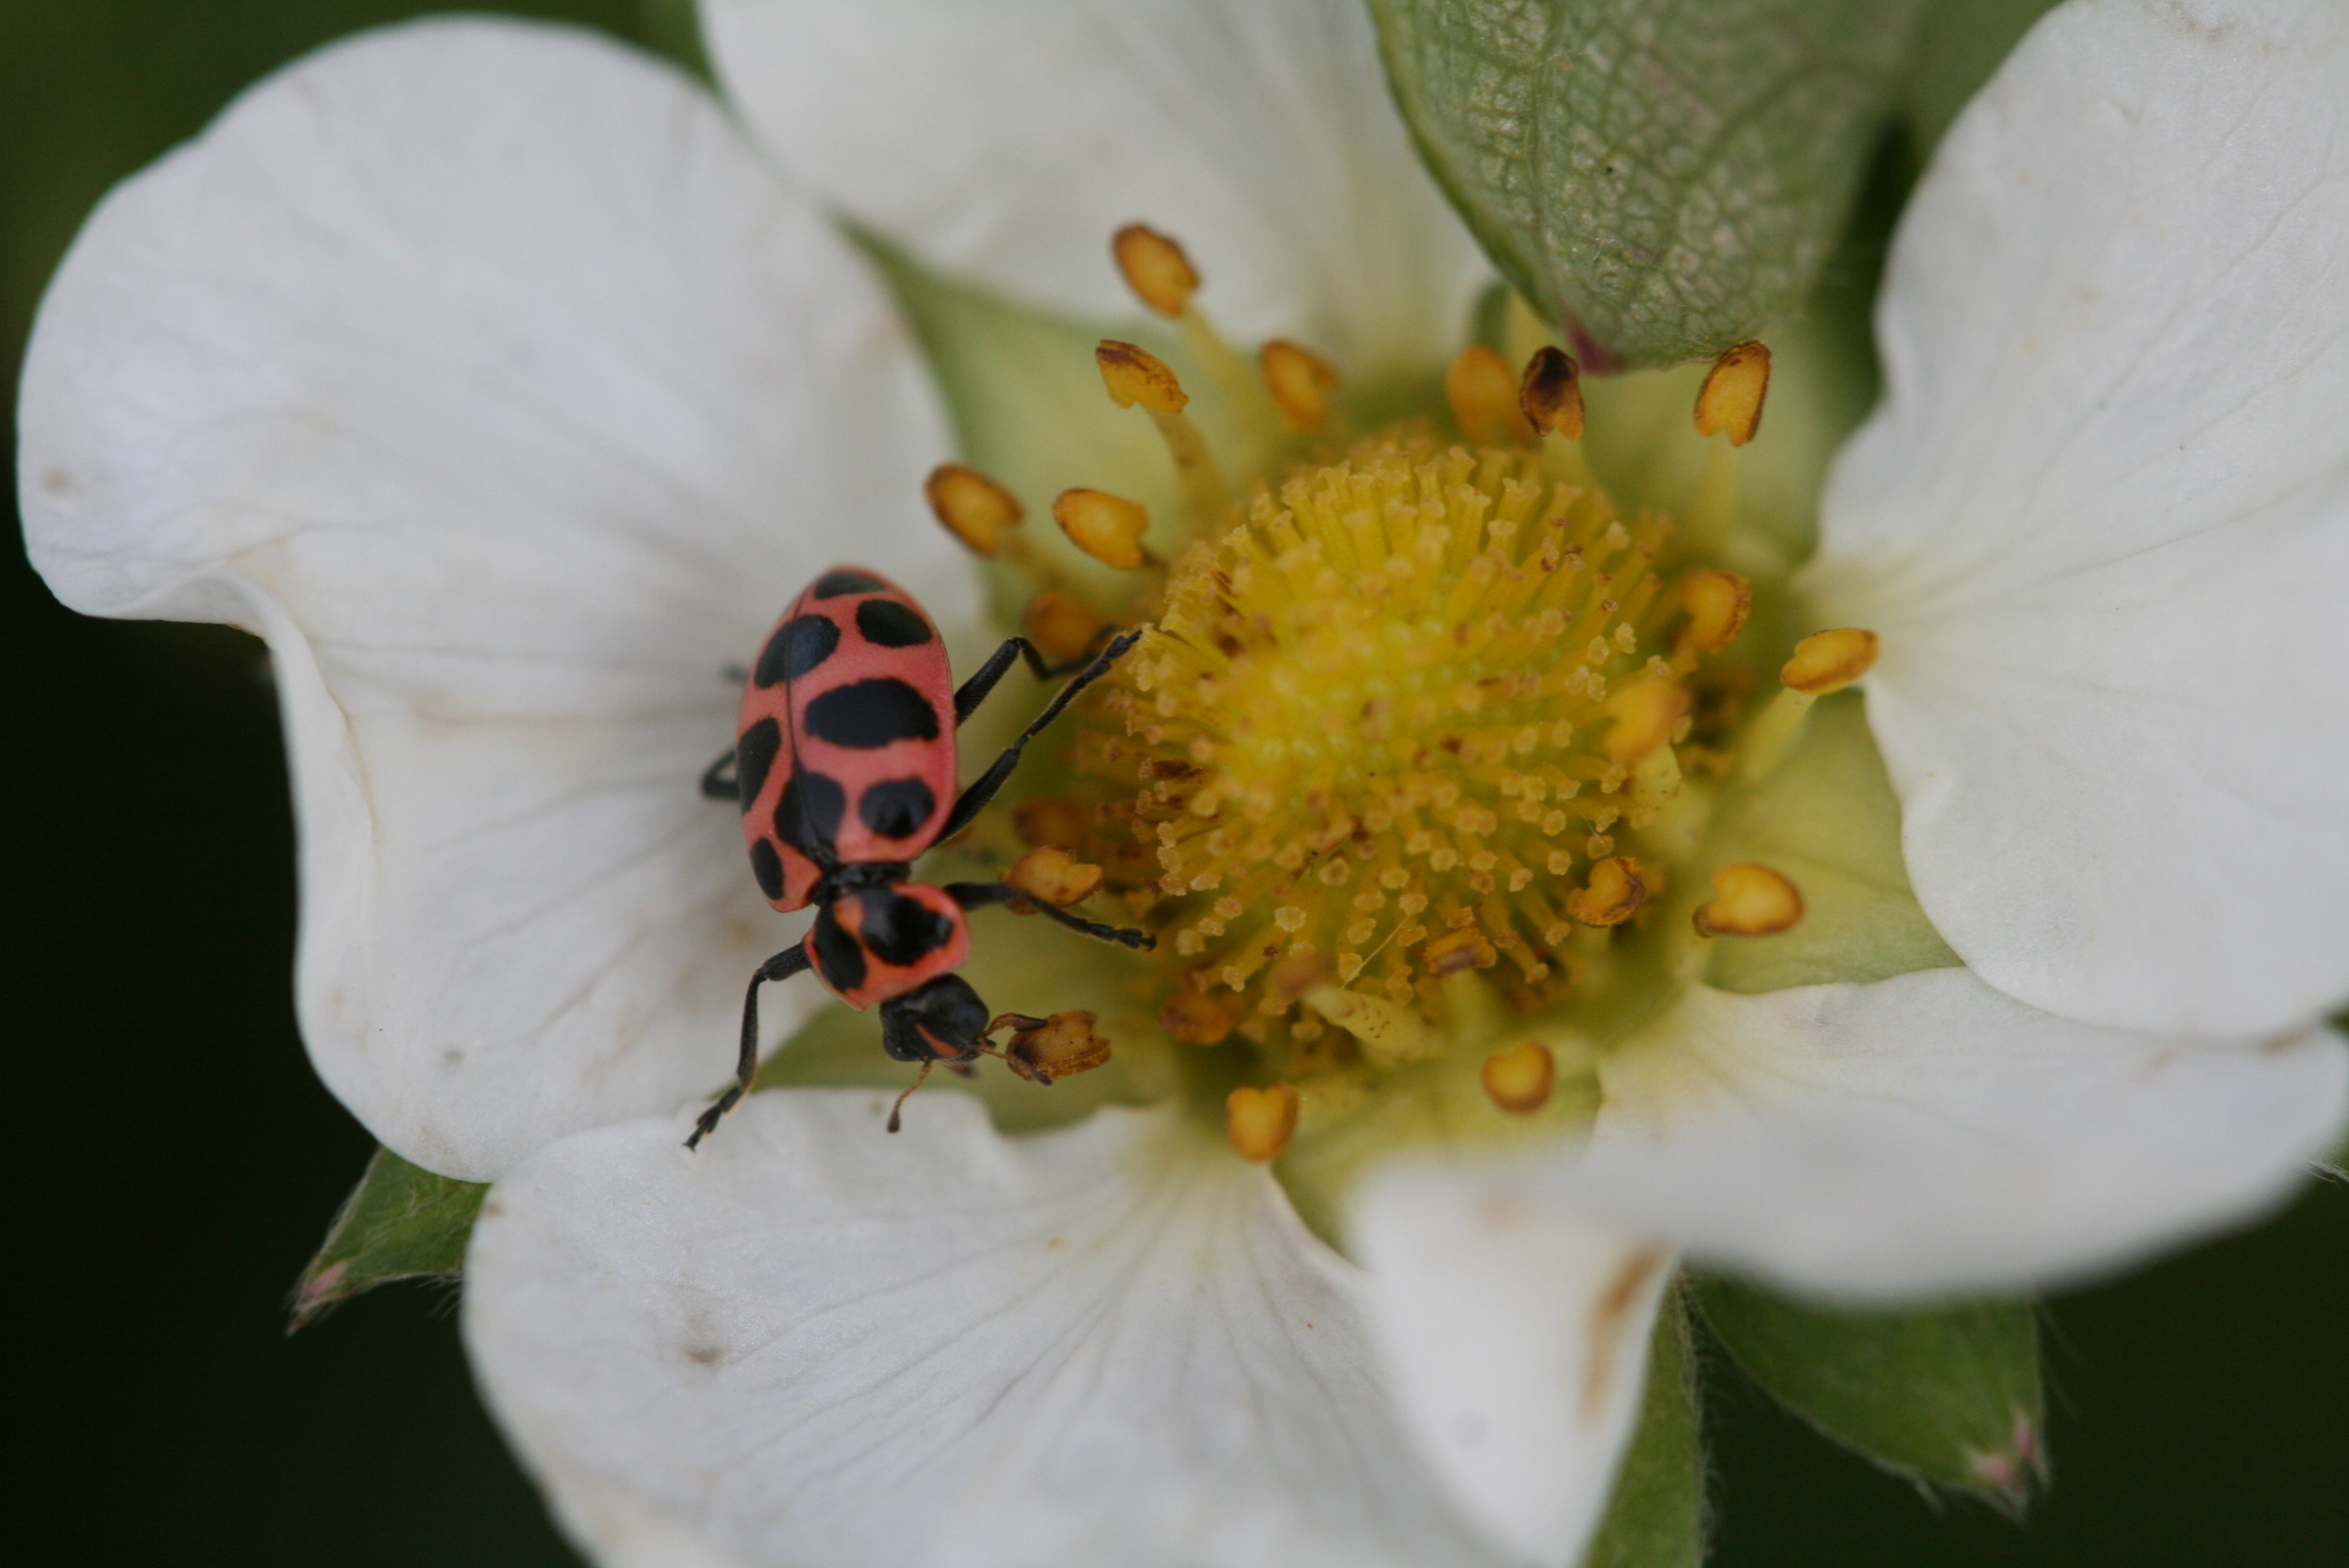 Lady bug adult. Photo: Jeremy Slone